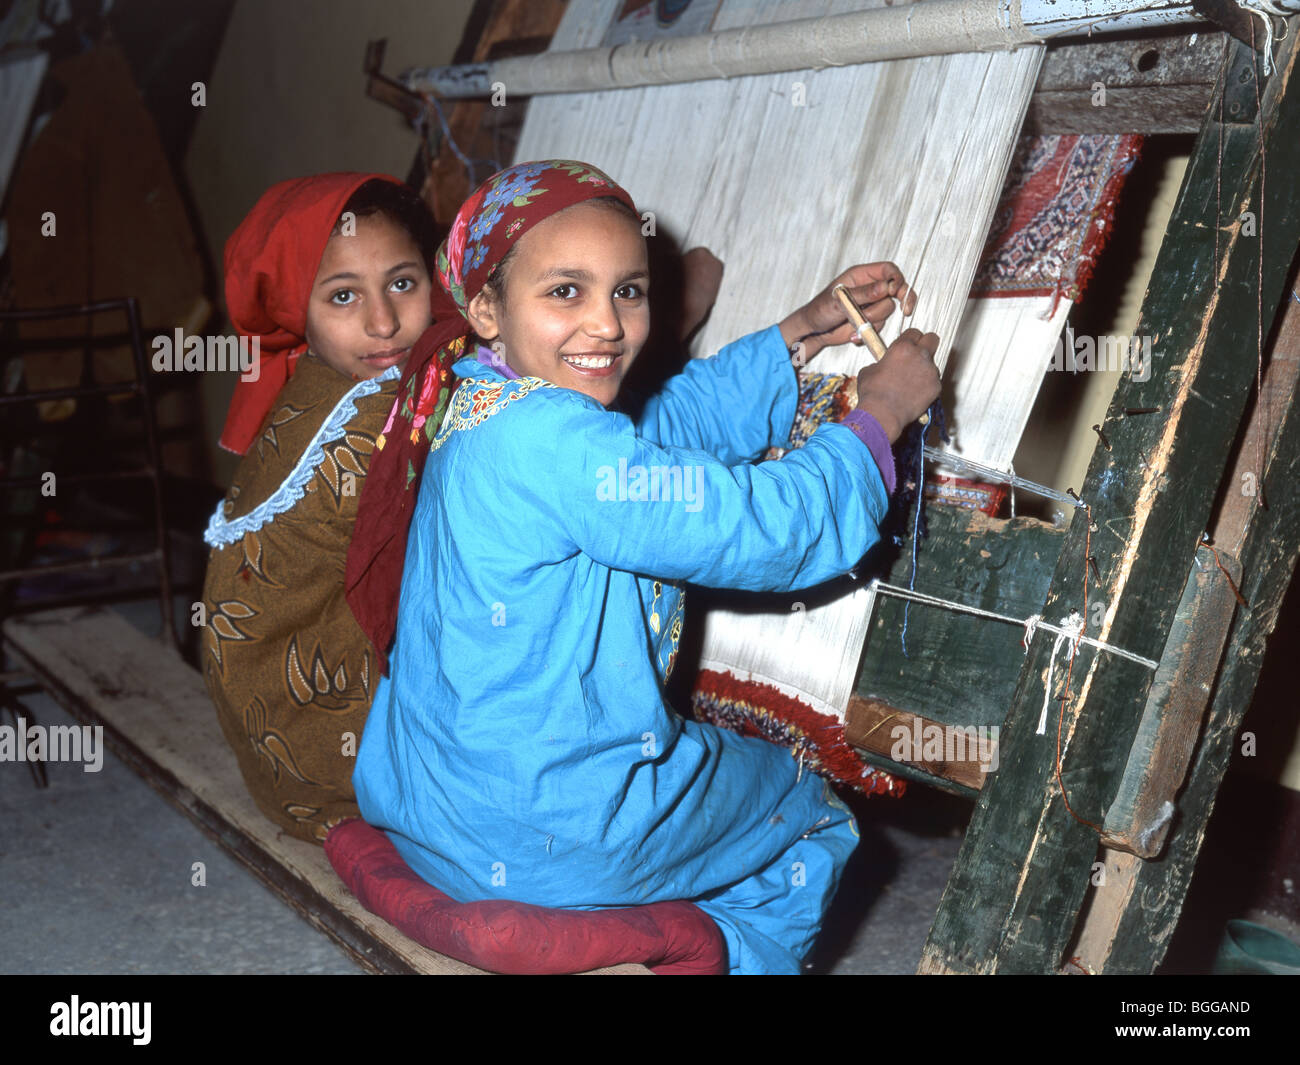 Children working in carpet factory, Cairo, Cairo Governorate, Egypt - Stock Image